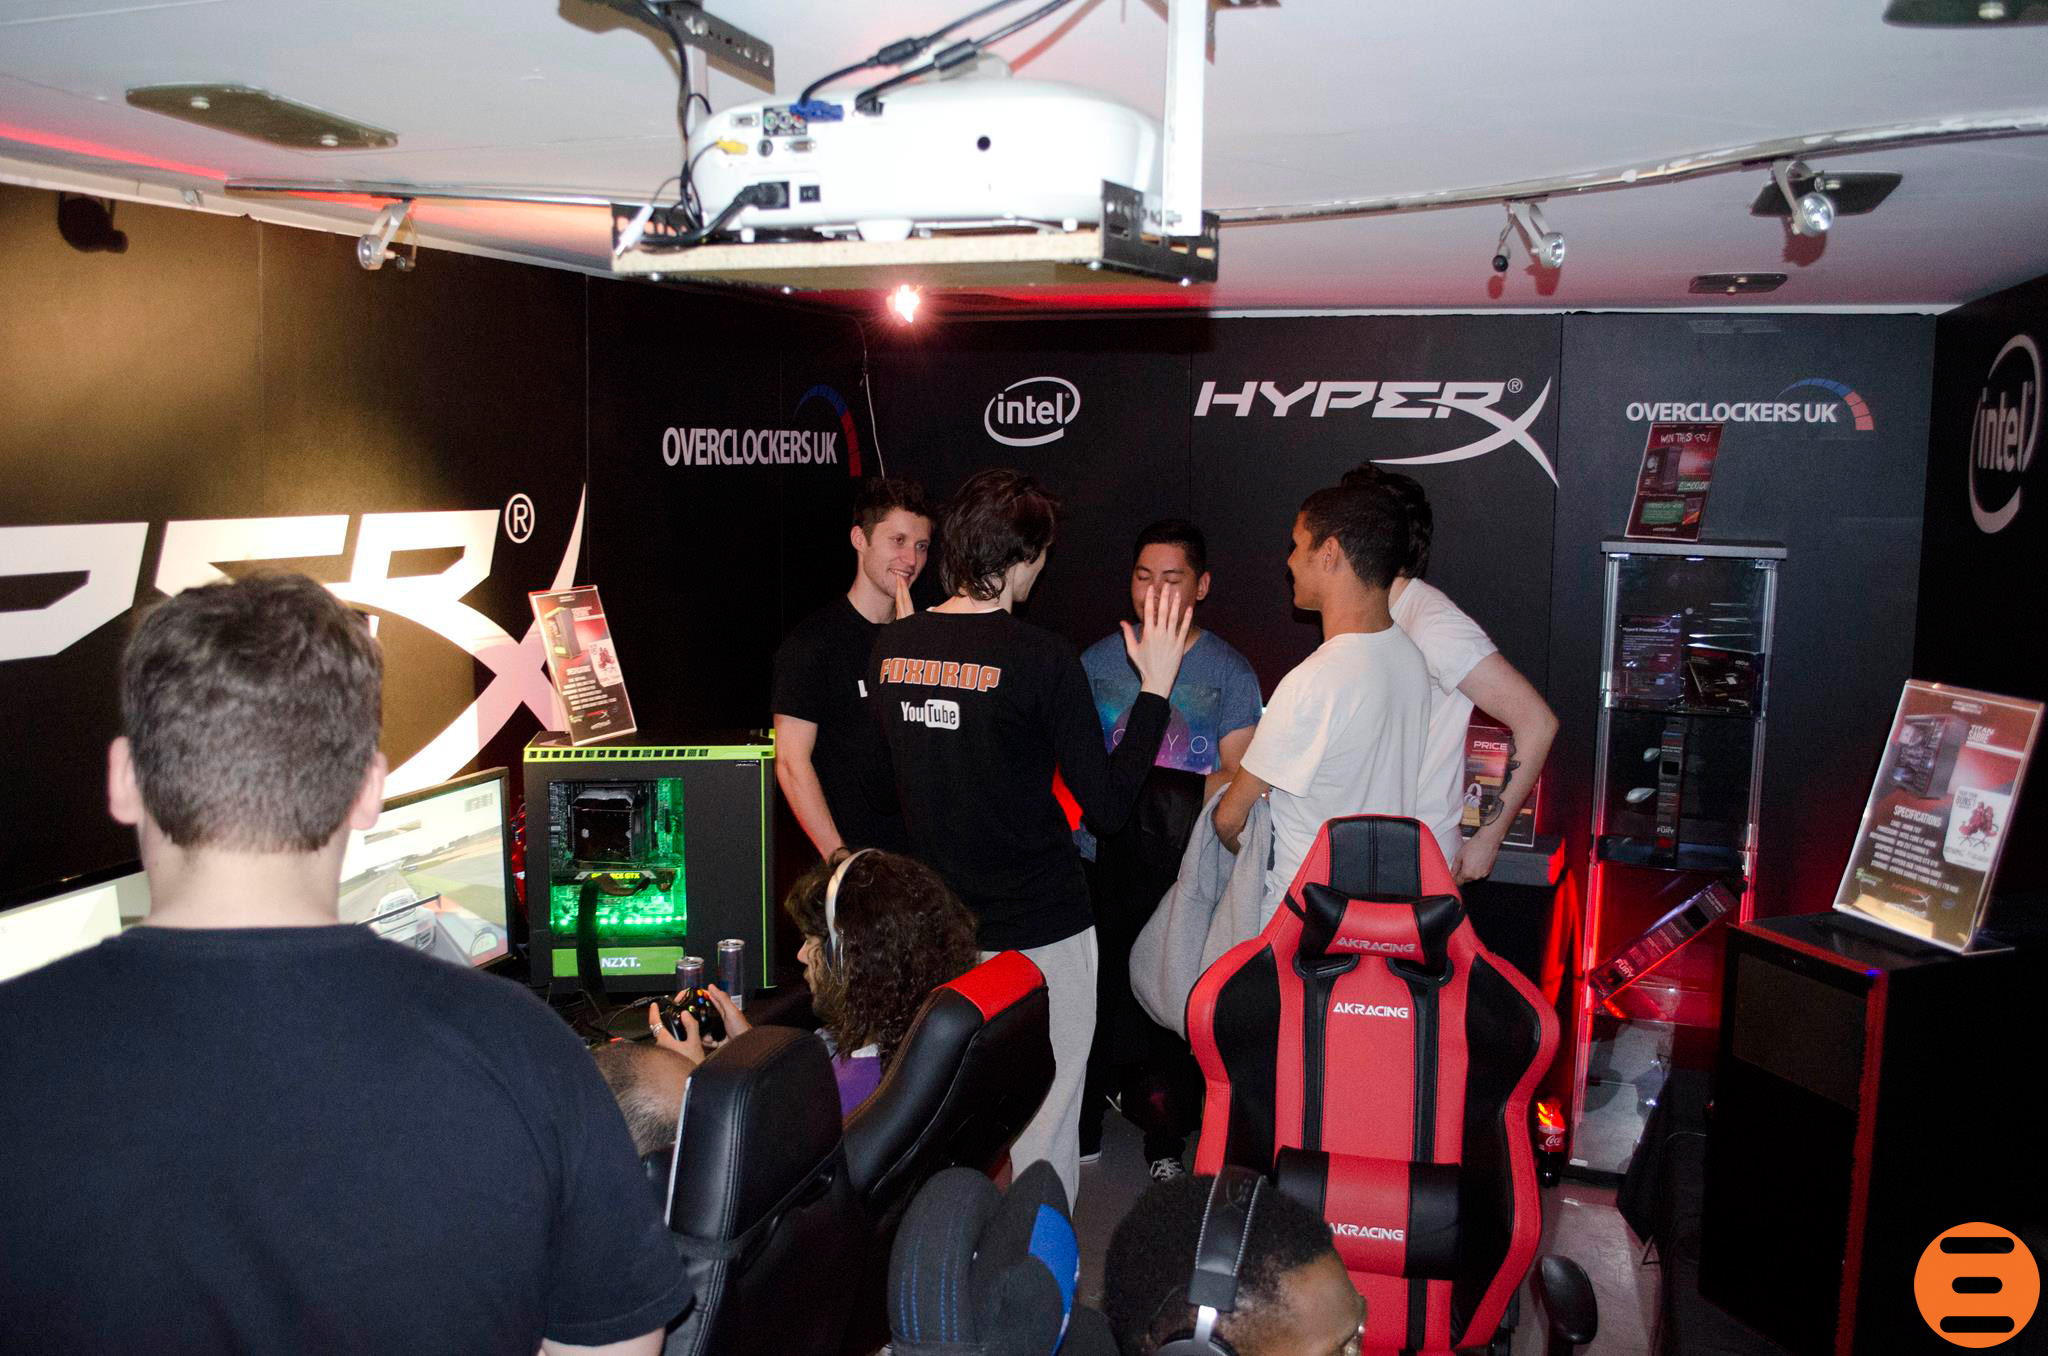 HyperX-Pop-Up-event-London-Zaboura-OcUK-Intel_1